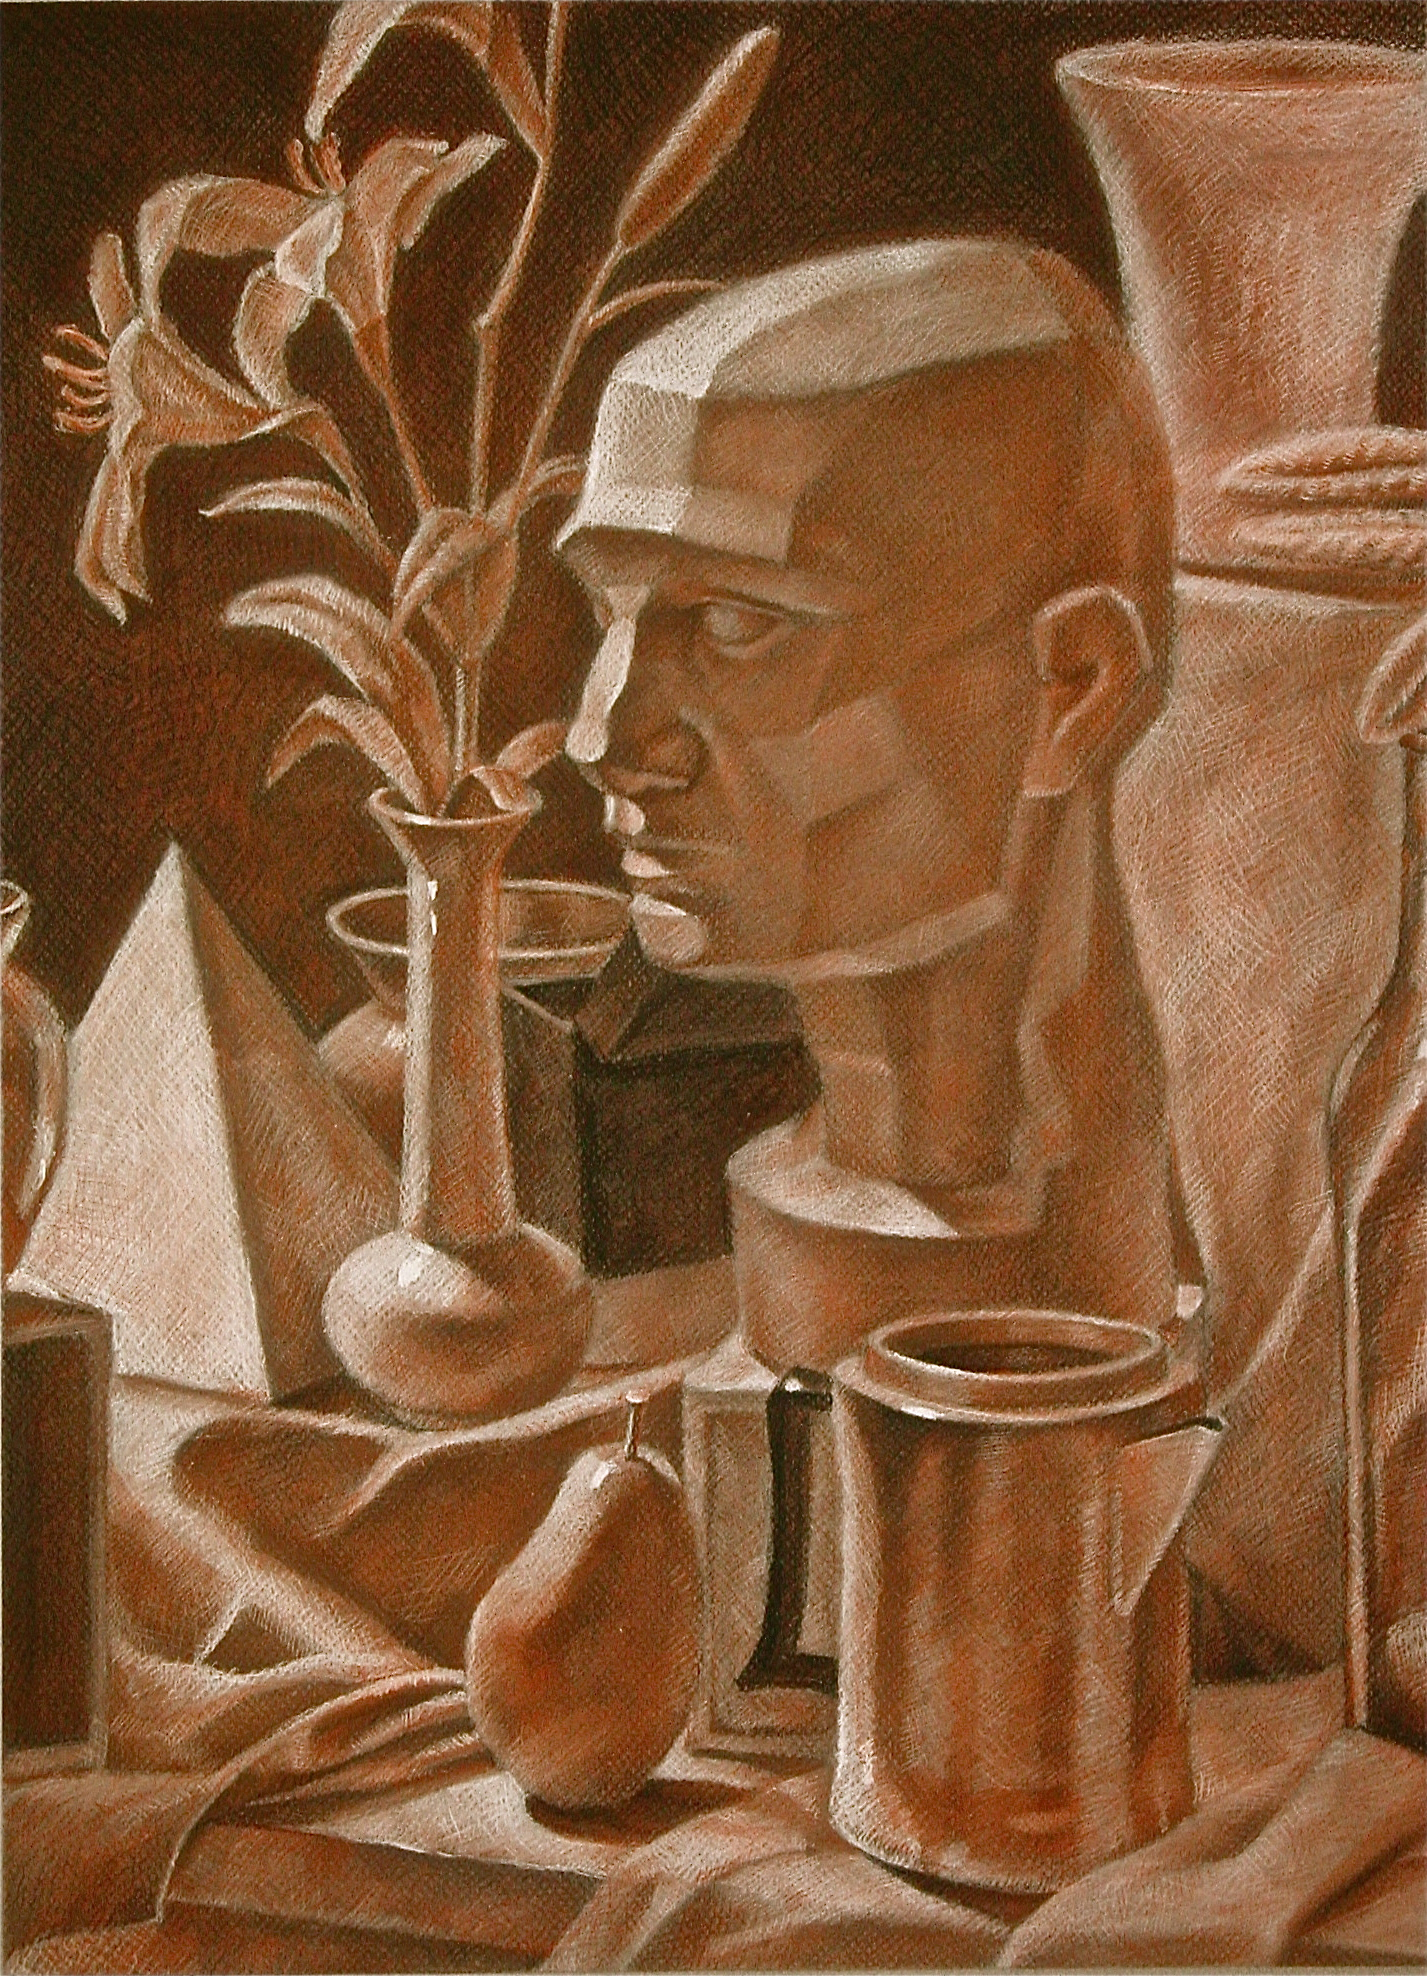 Drawn still life conte crayon My Find Pinterest Pin and